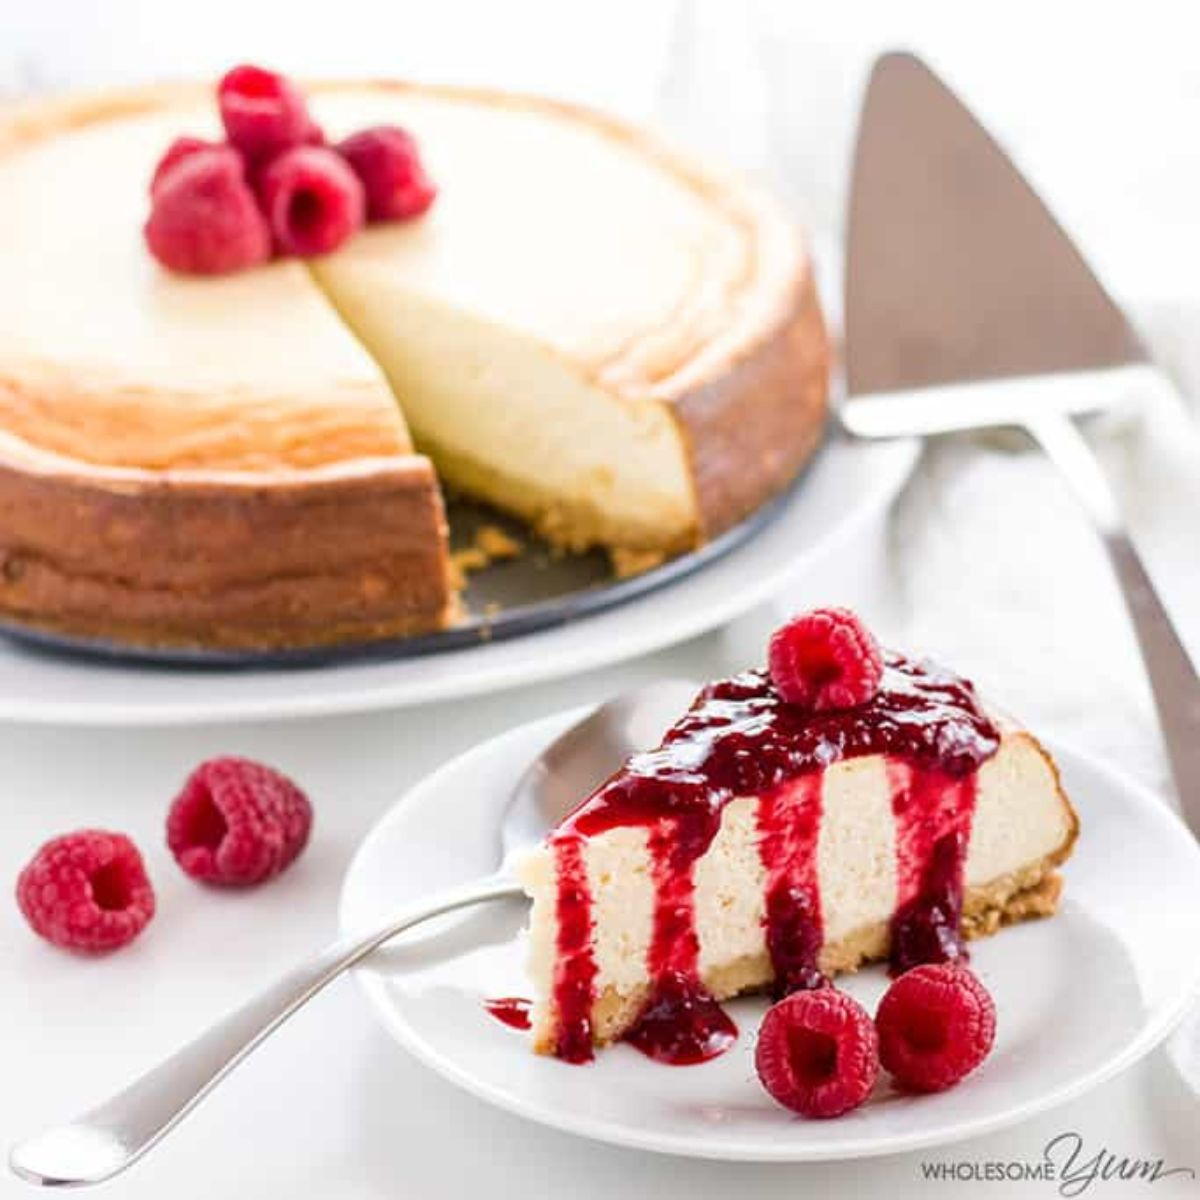 on a plate is a baked cheesecake with raspberries in the center. Below it is one slice of the cheesecake with raspberry coulis dirzzled over it. A cake slice os on the righ tof the photo